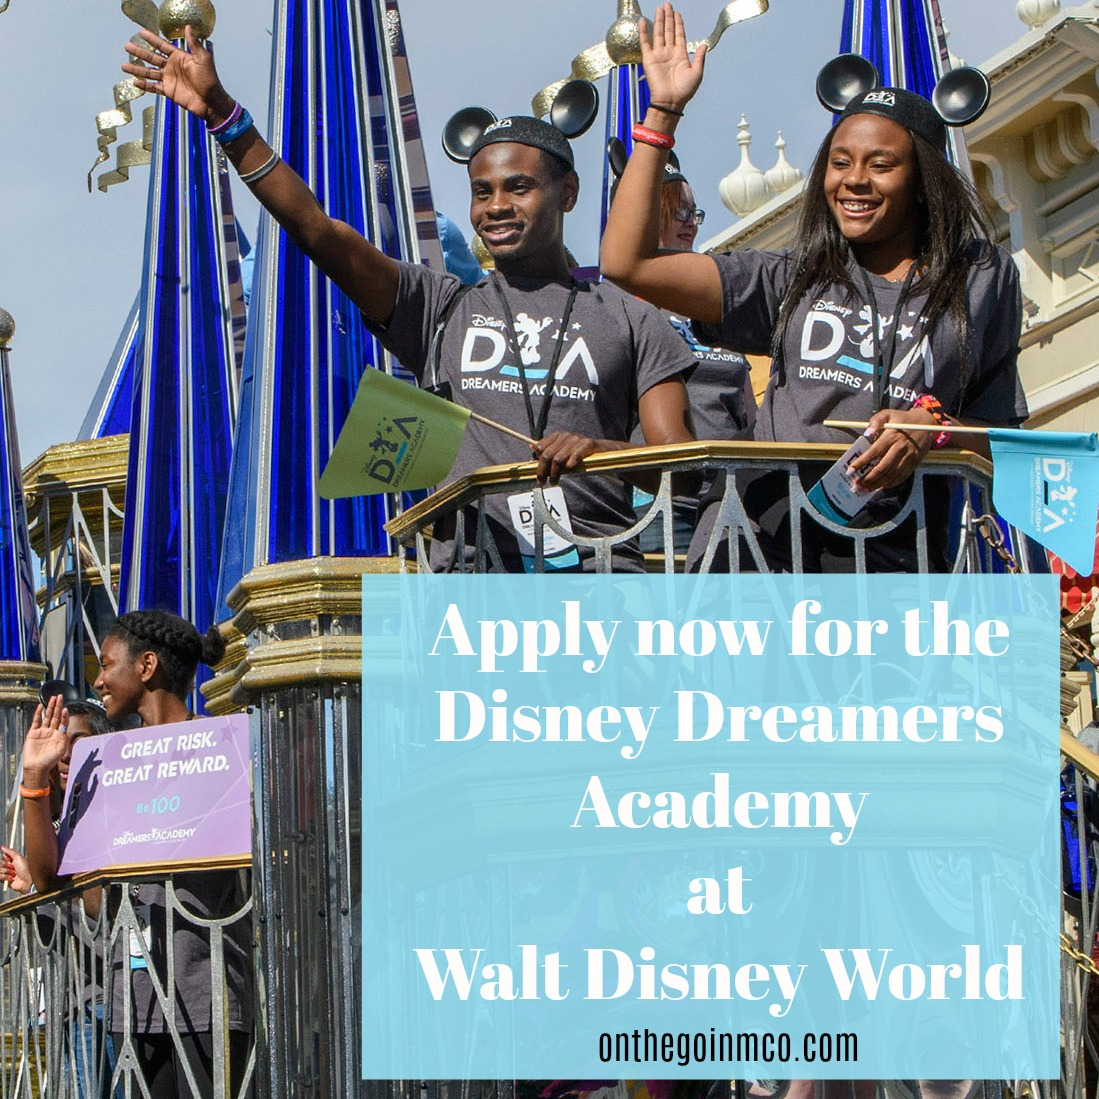 Disney Dreamers Academy 2019 Applications